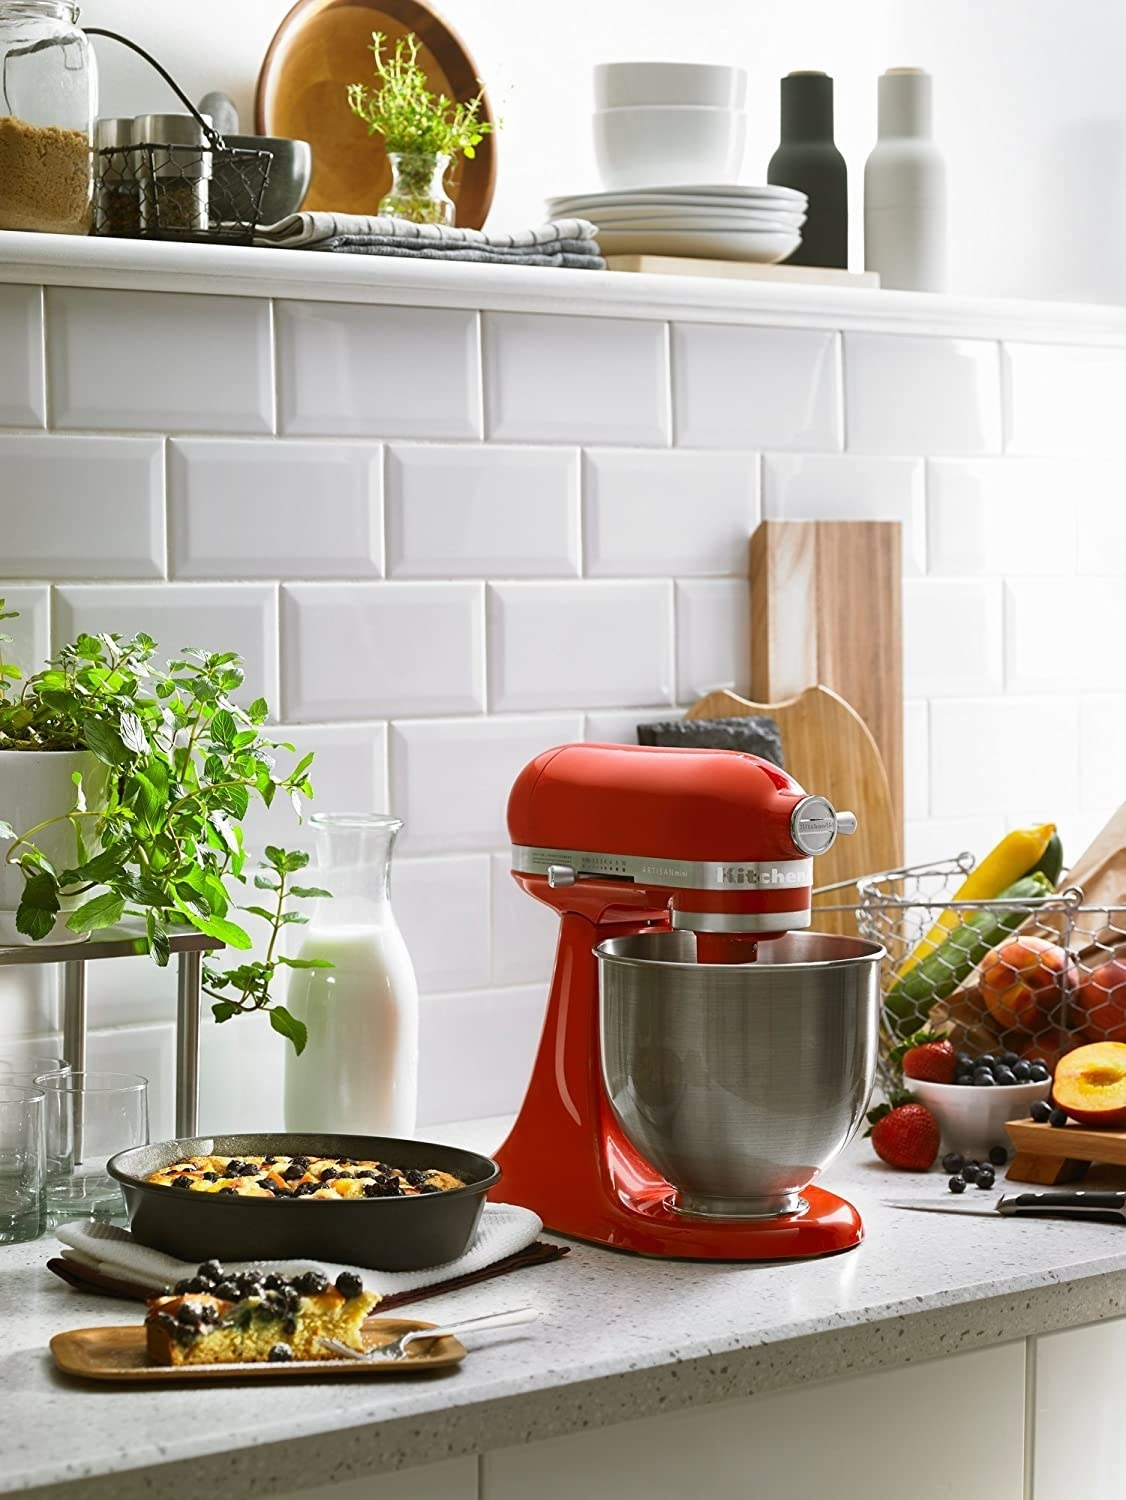 Small stand mixer around vegetables and baked goods